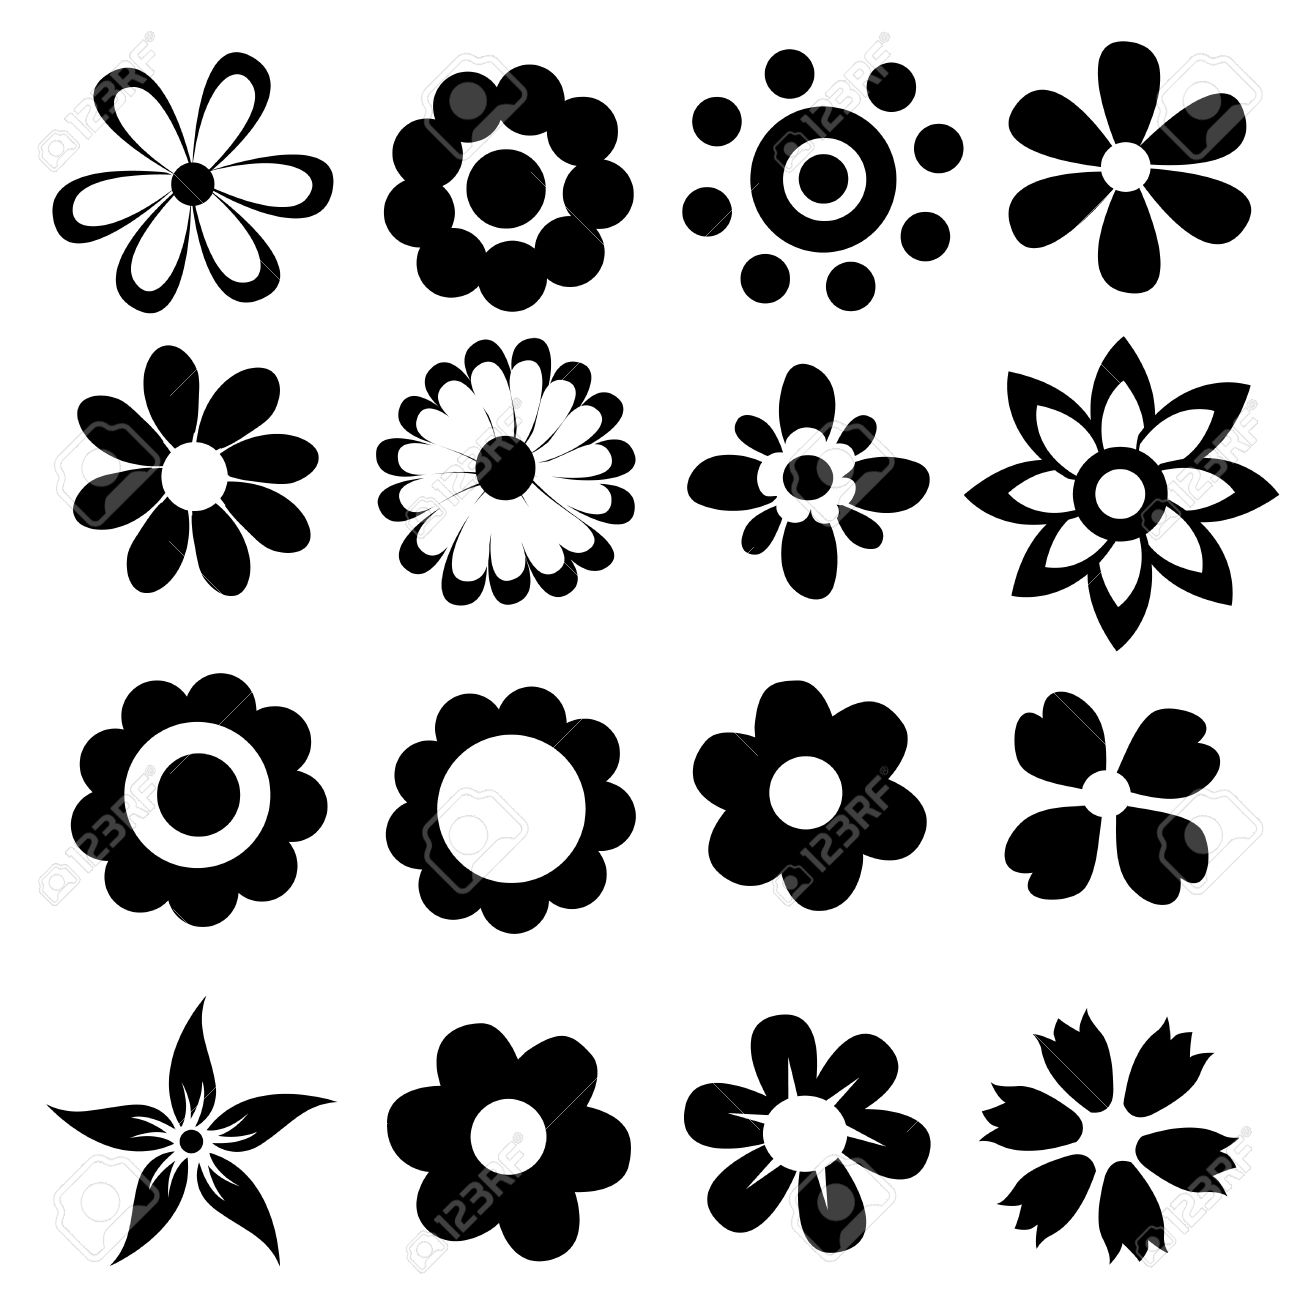 silhouettes of simple vector